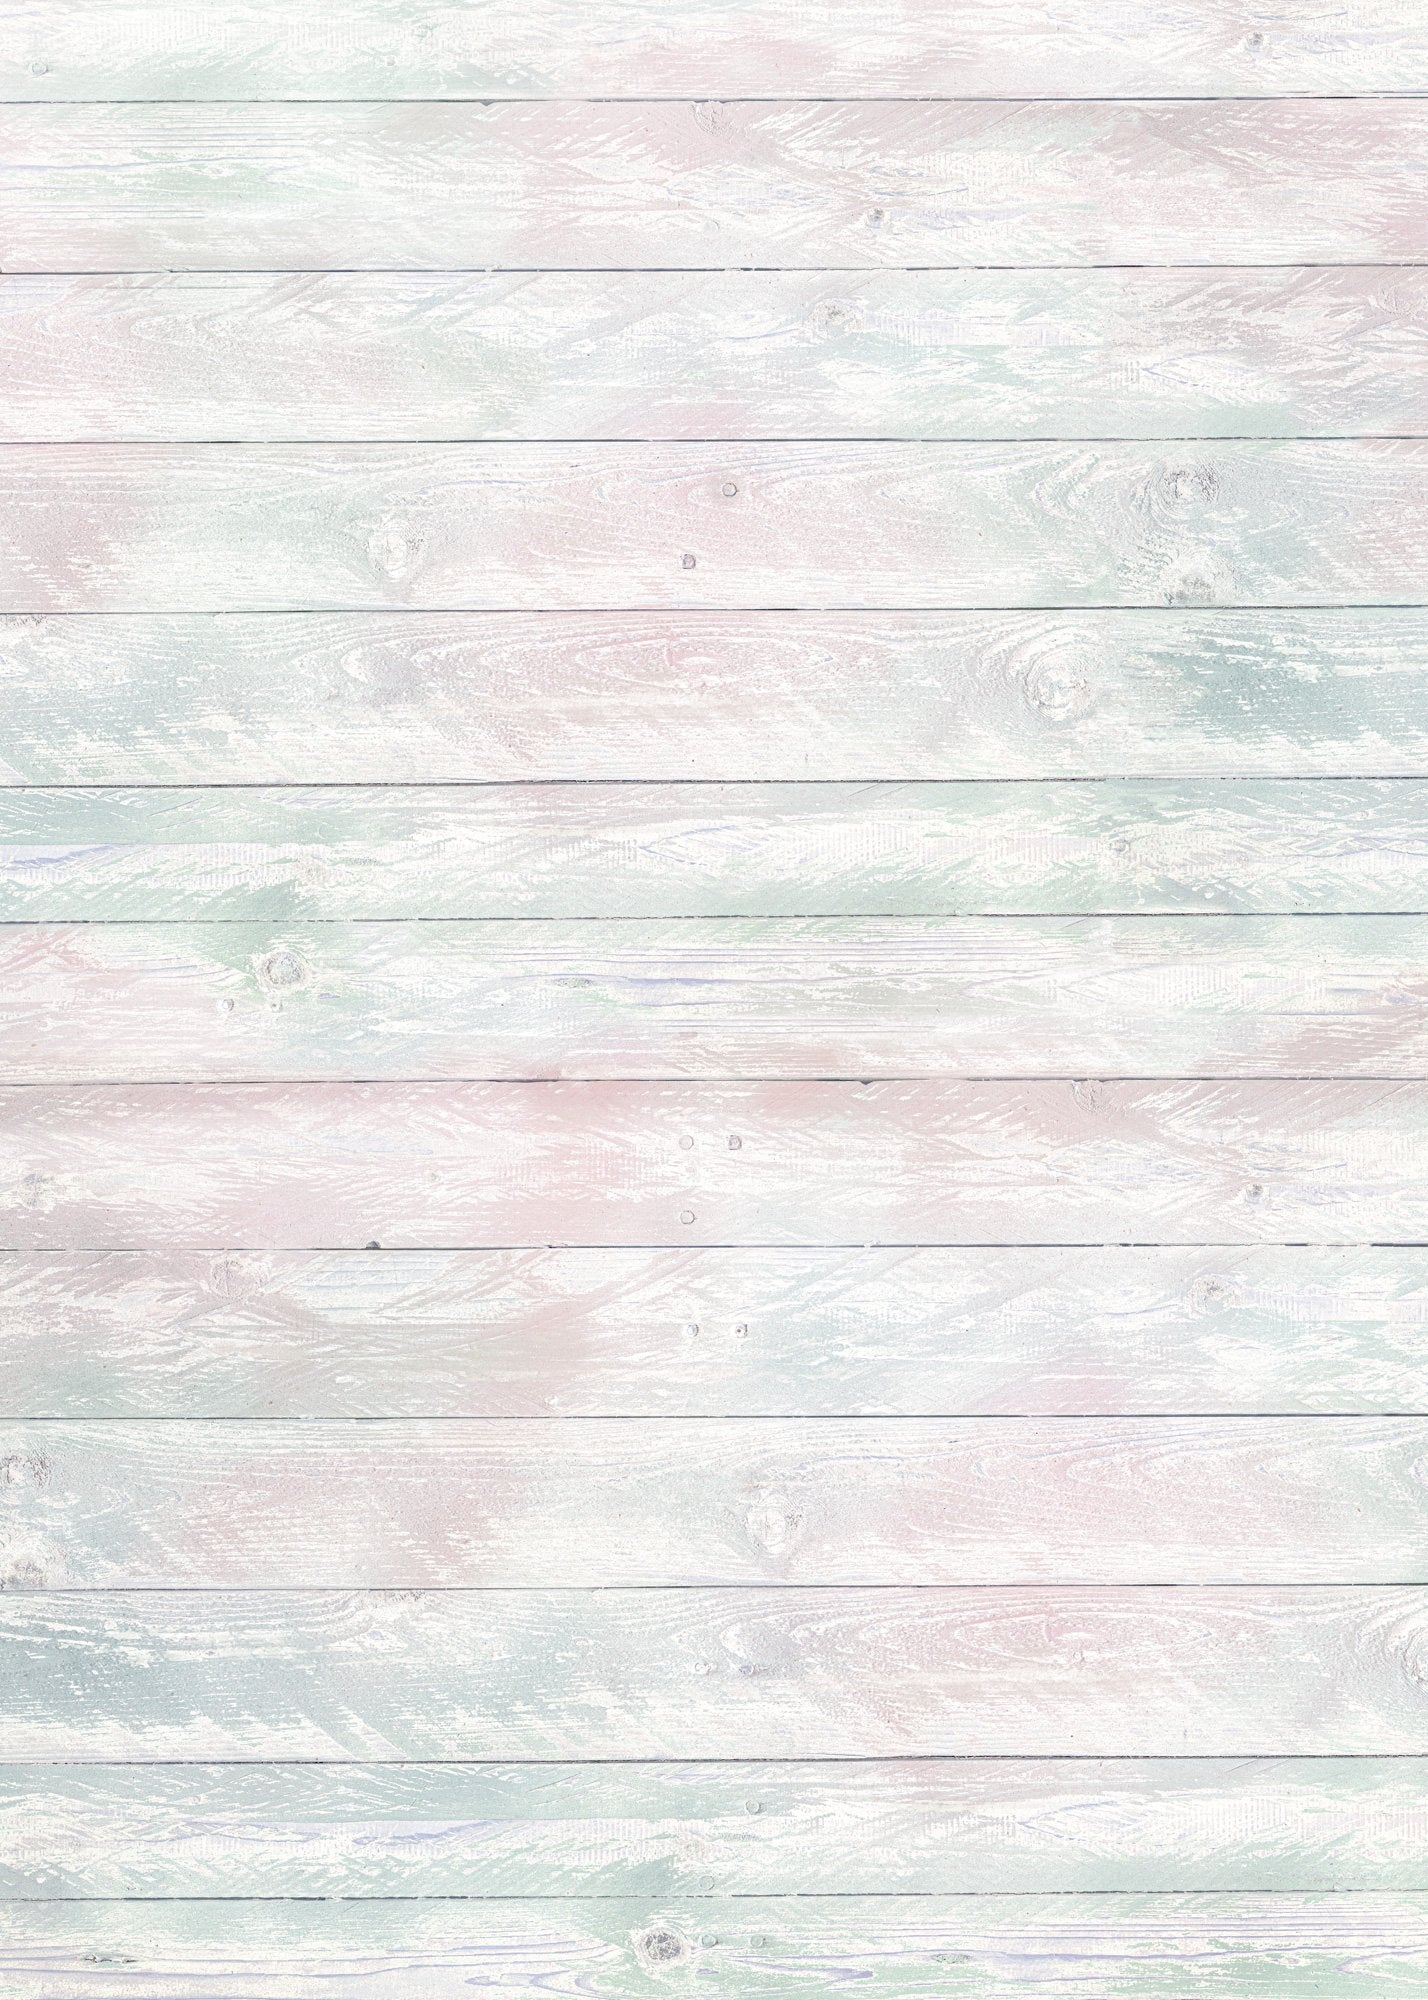 Unicorn Wood Large Vinyl Photography Backdrop by Club Backdrops